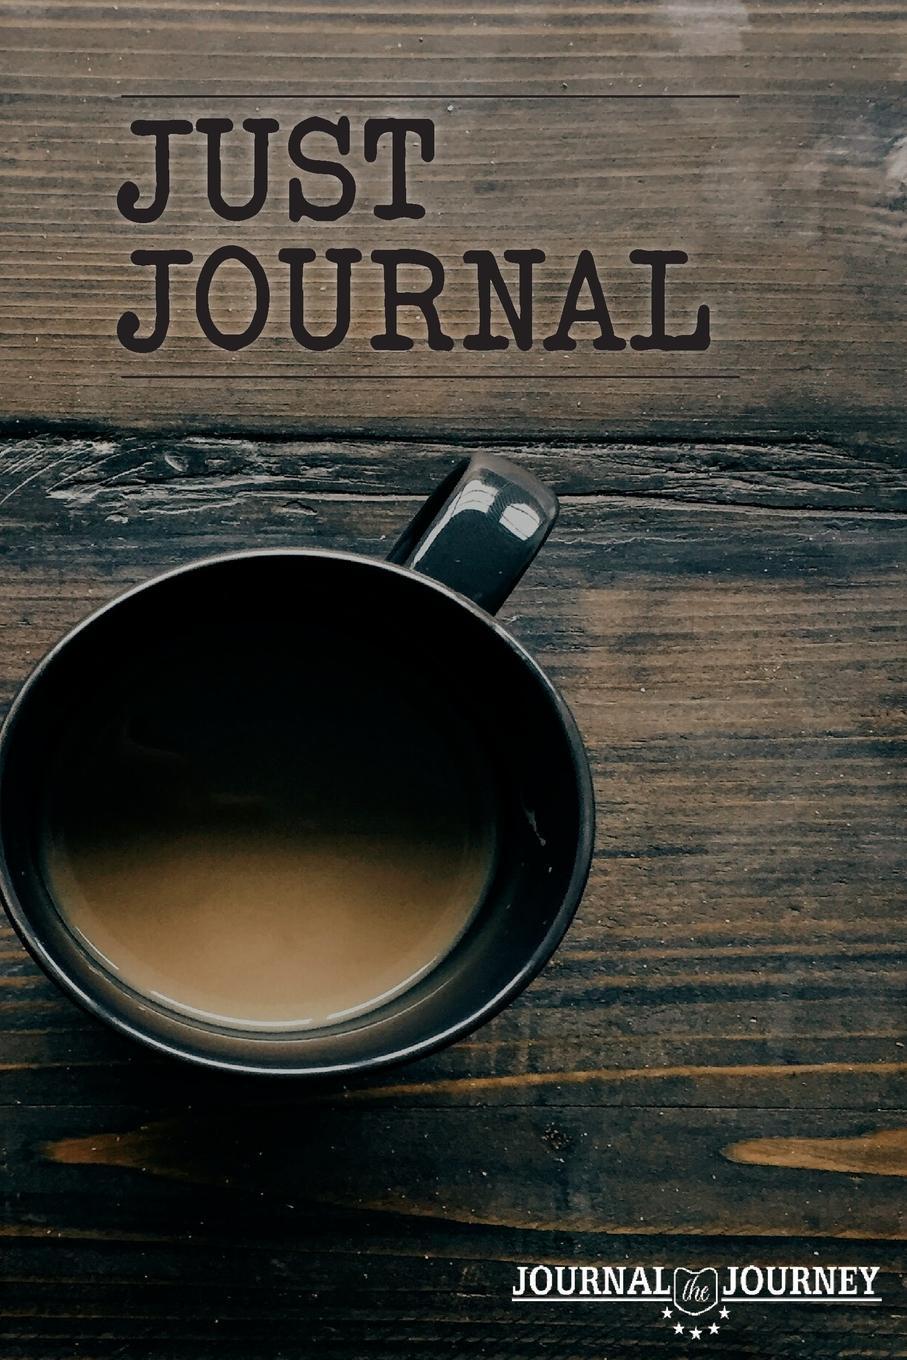 Just Journal. Journal the Journey